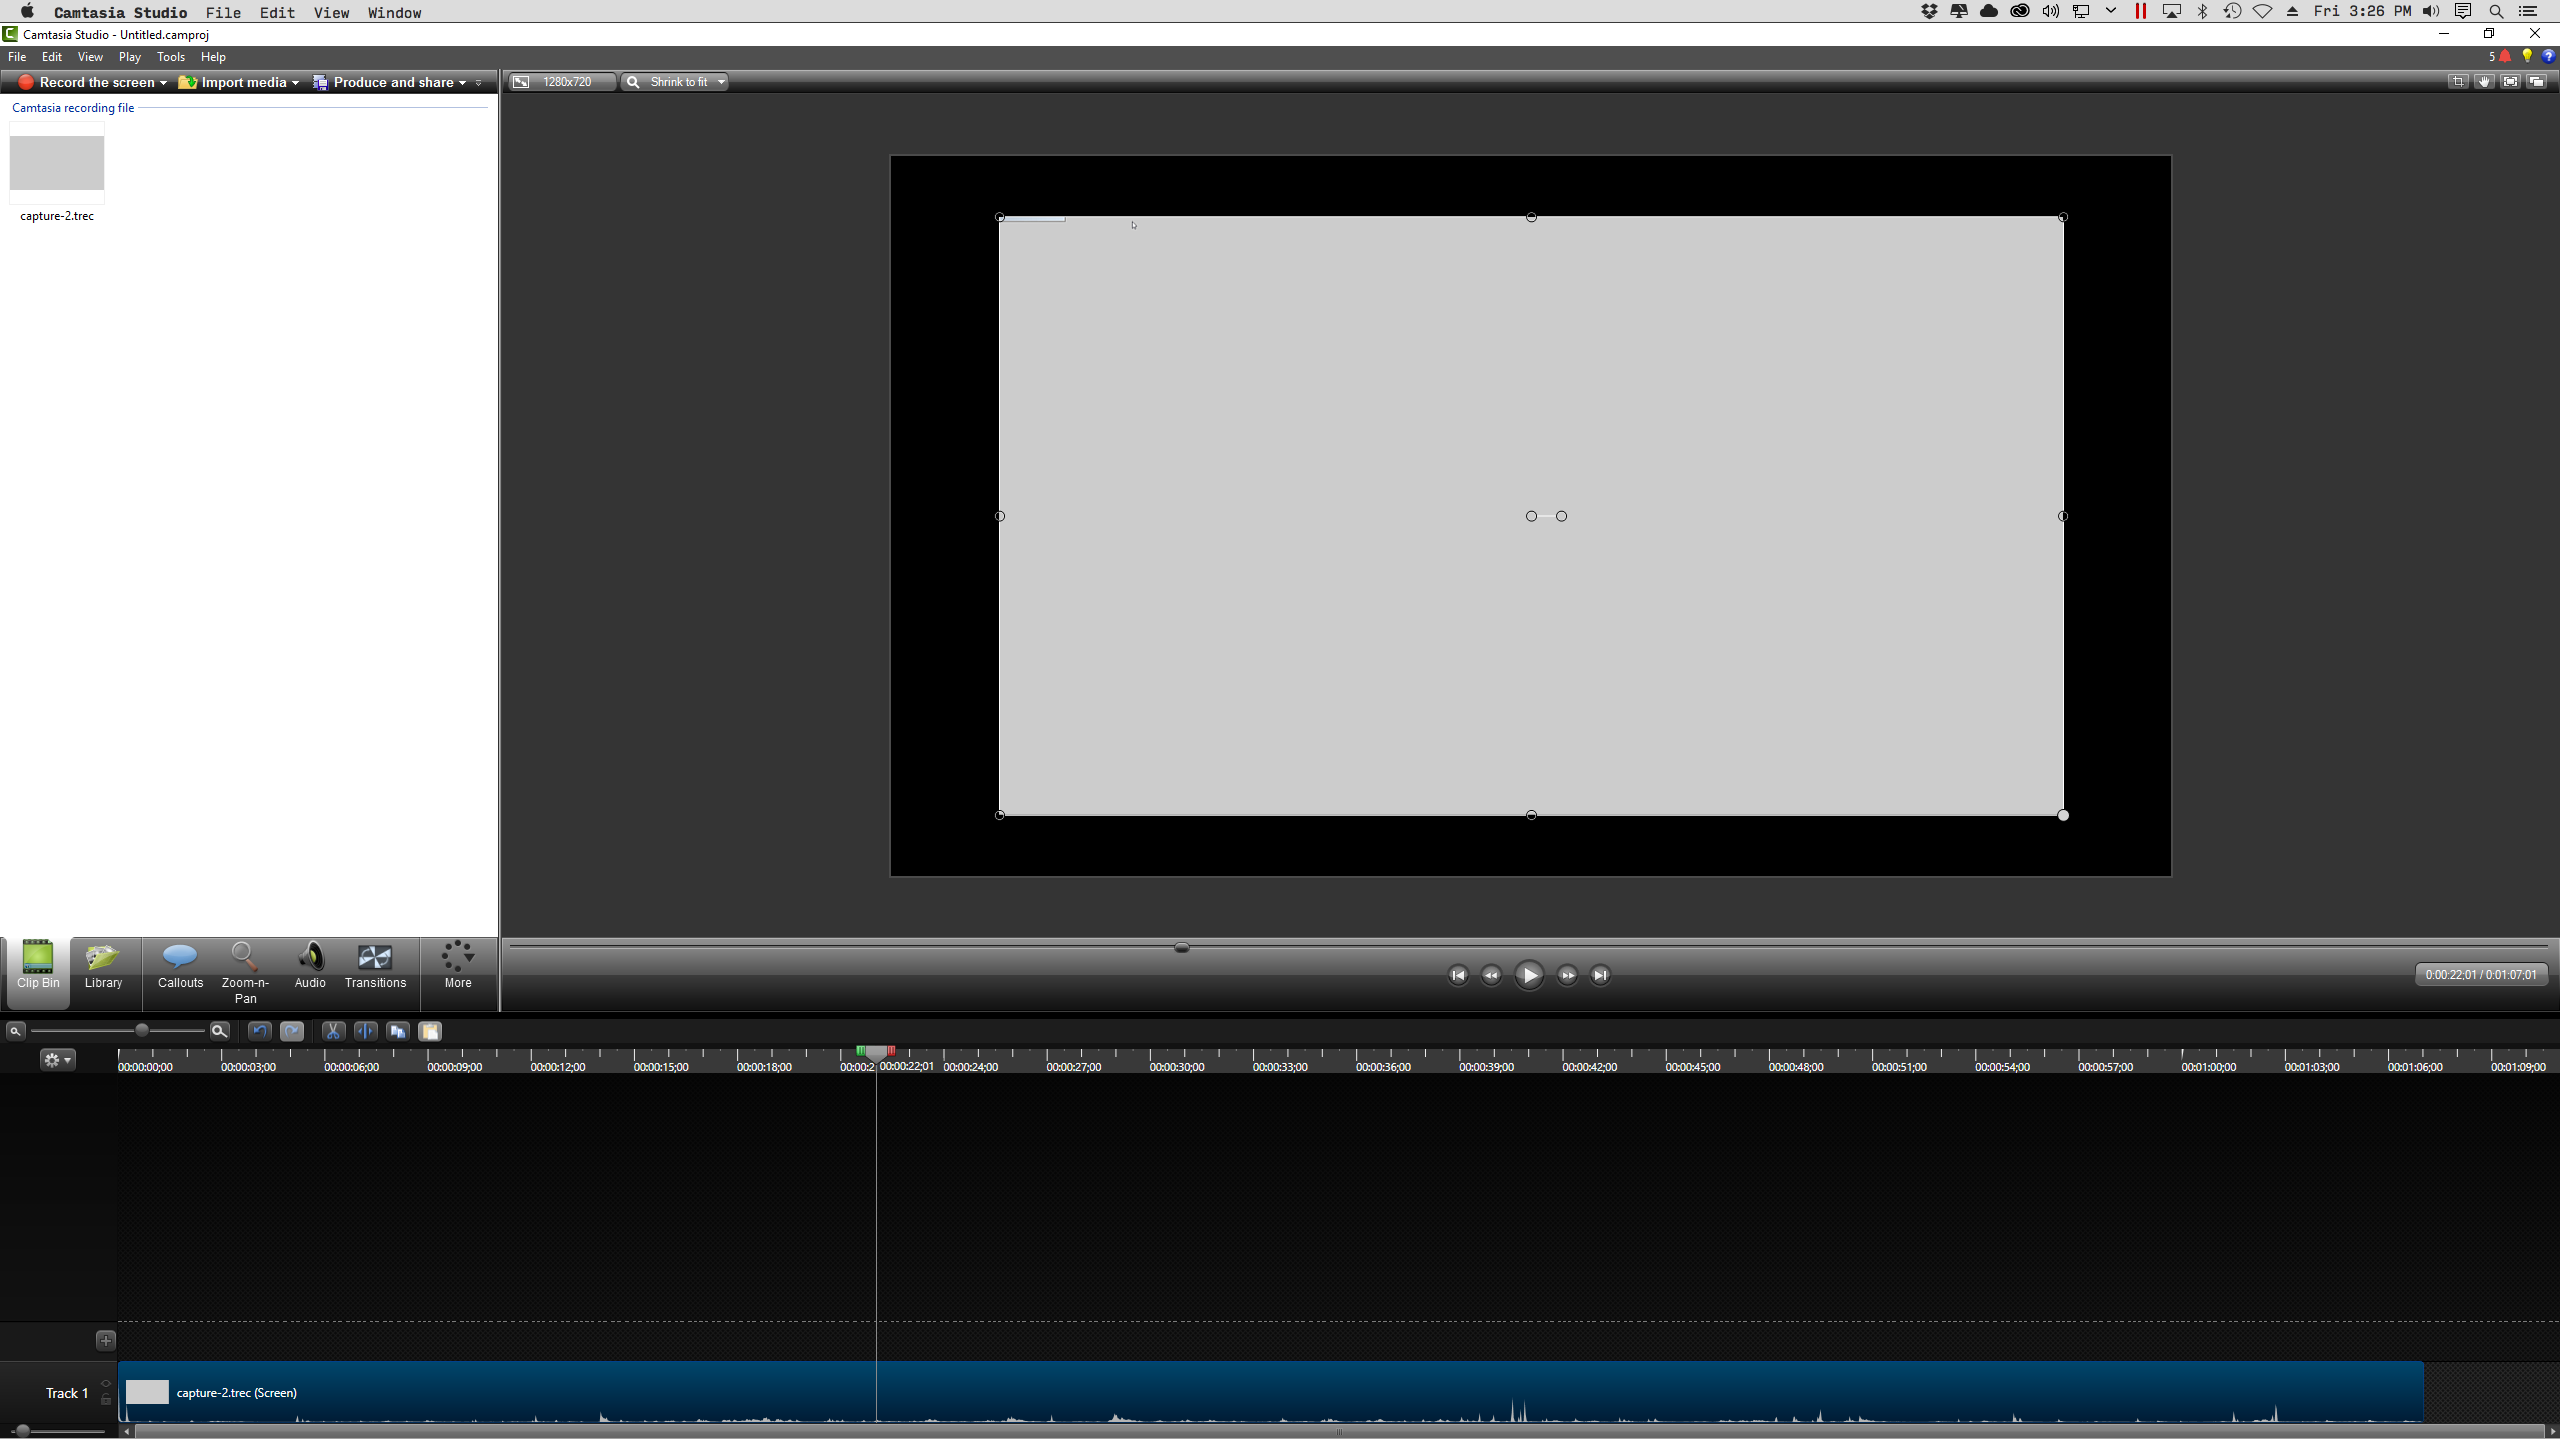 Recording editing and exporting with camtasia studio for windows a white border will appear and allow you to drag at the corners to resize and place the videos you can also rotate from the center handle ccuart Image collections